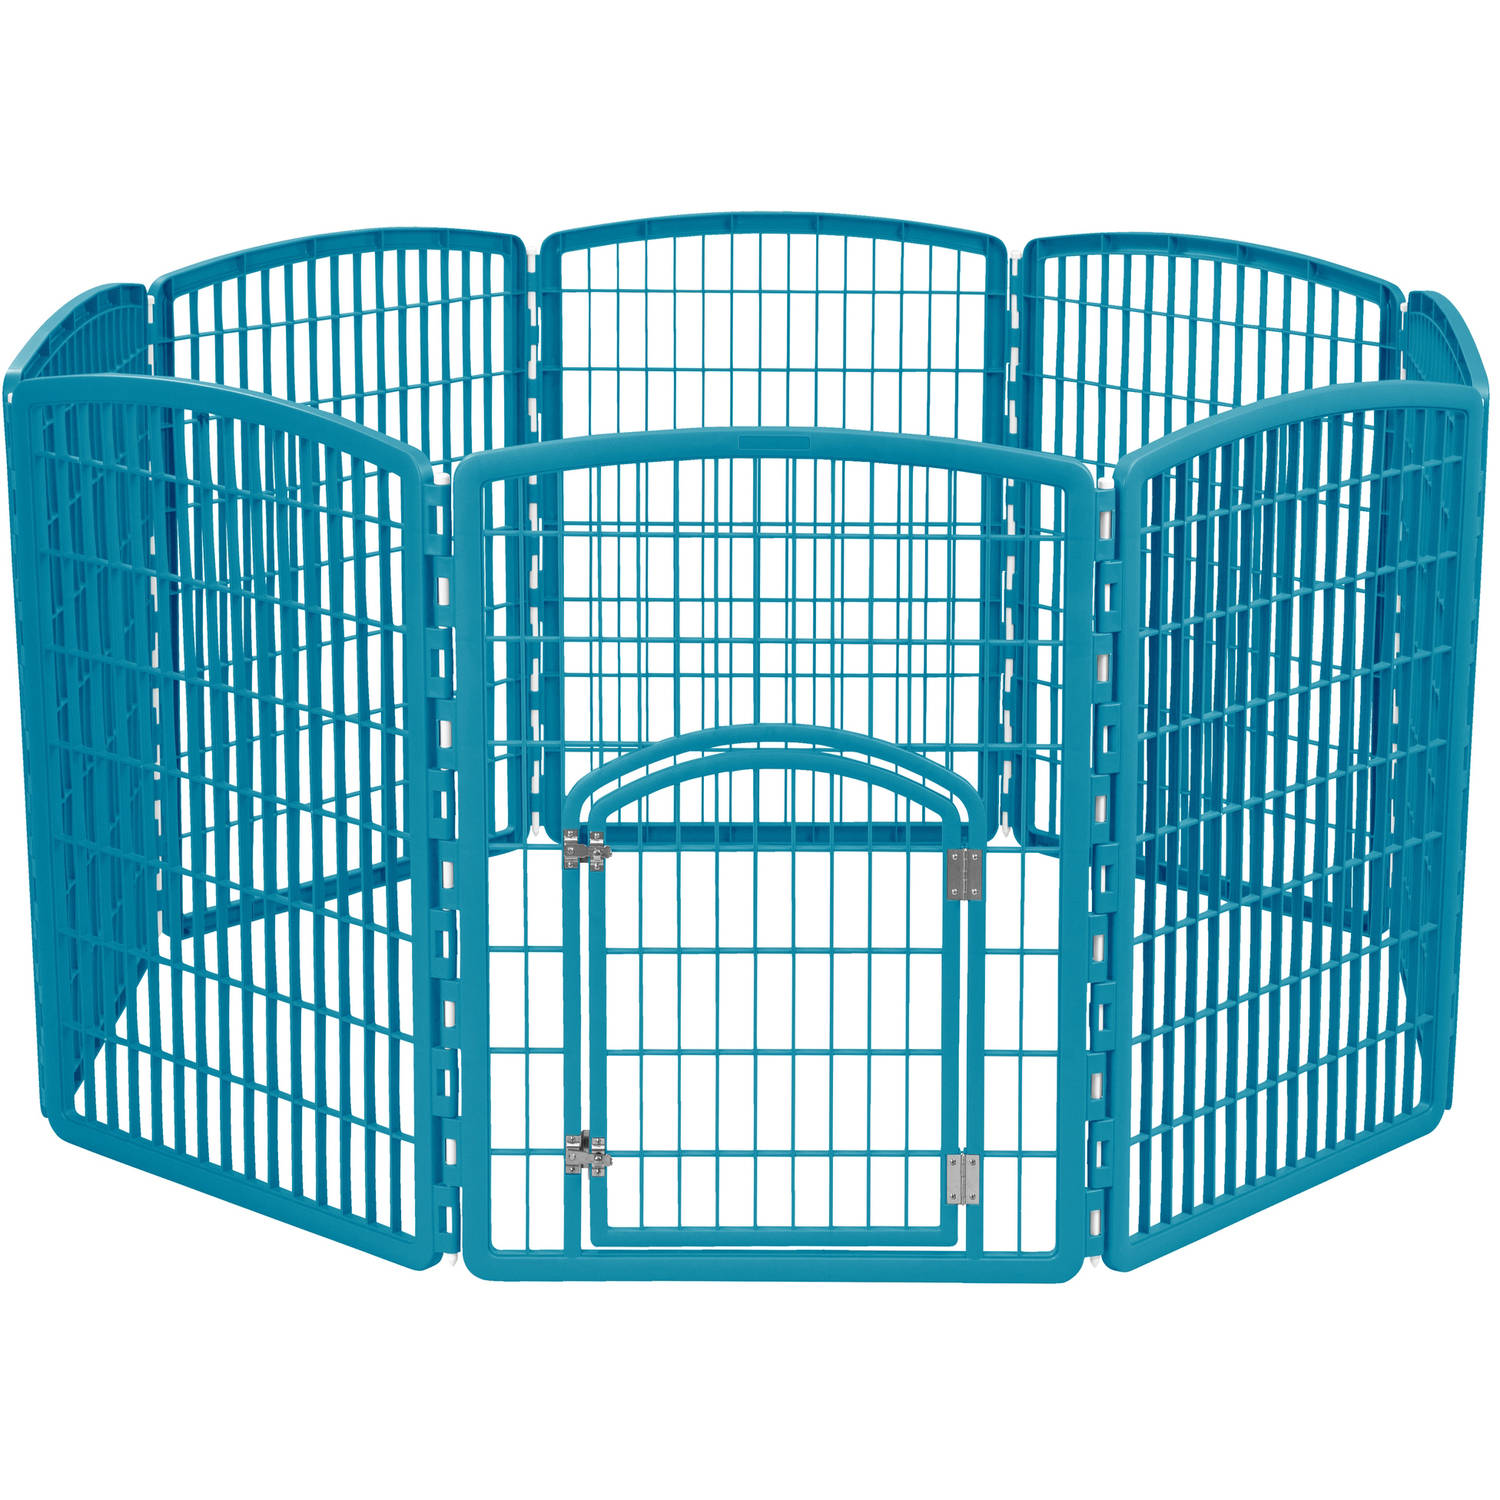 IRIS 8-Panel Pet Pen with Door, Blue Moon